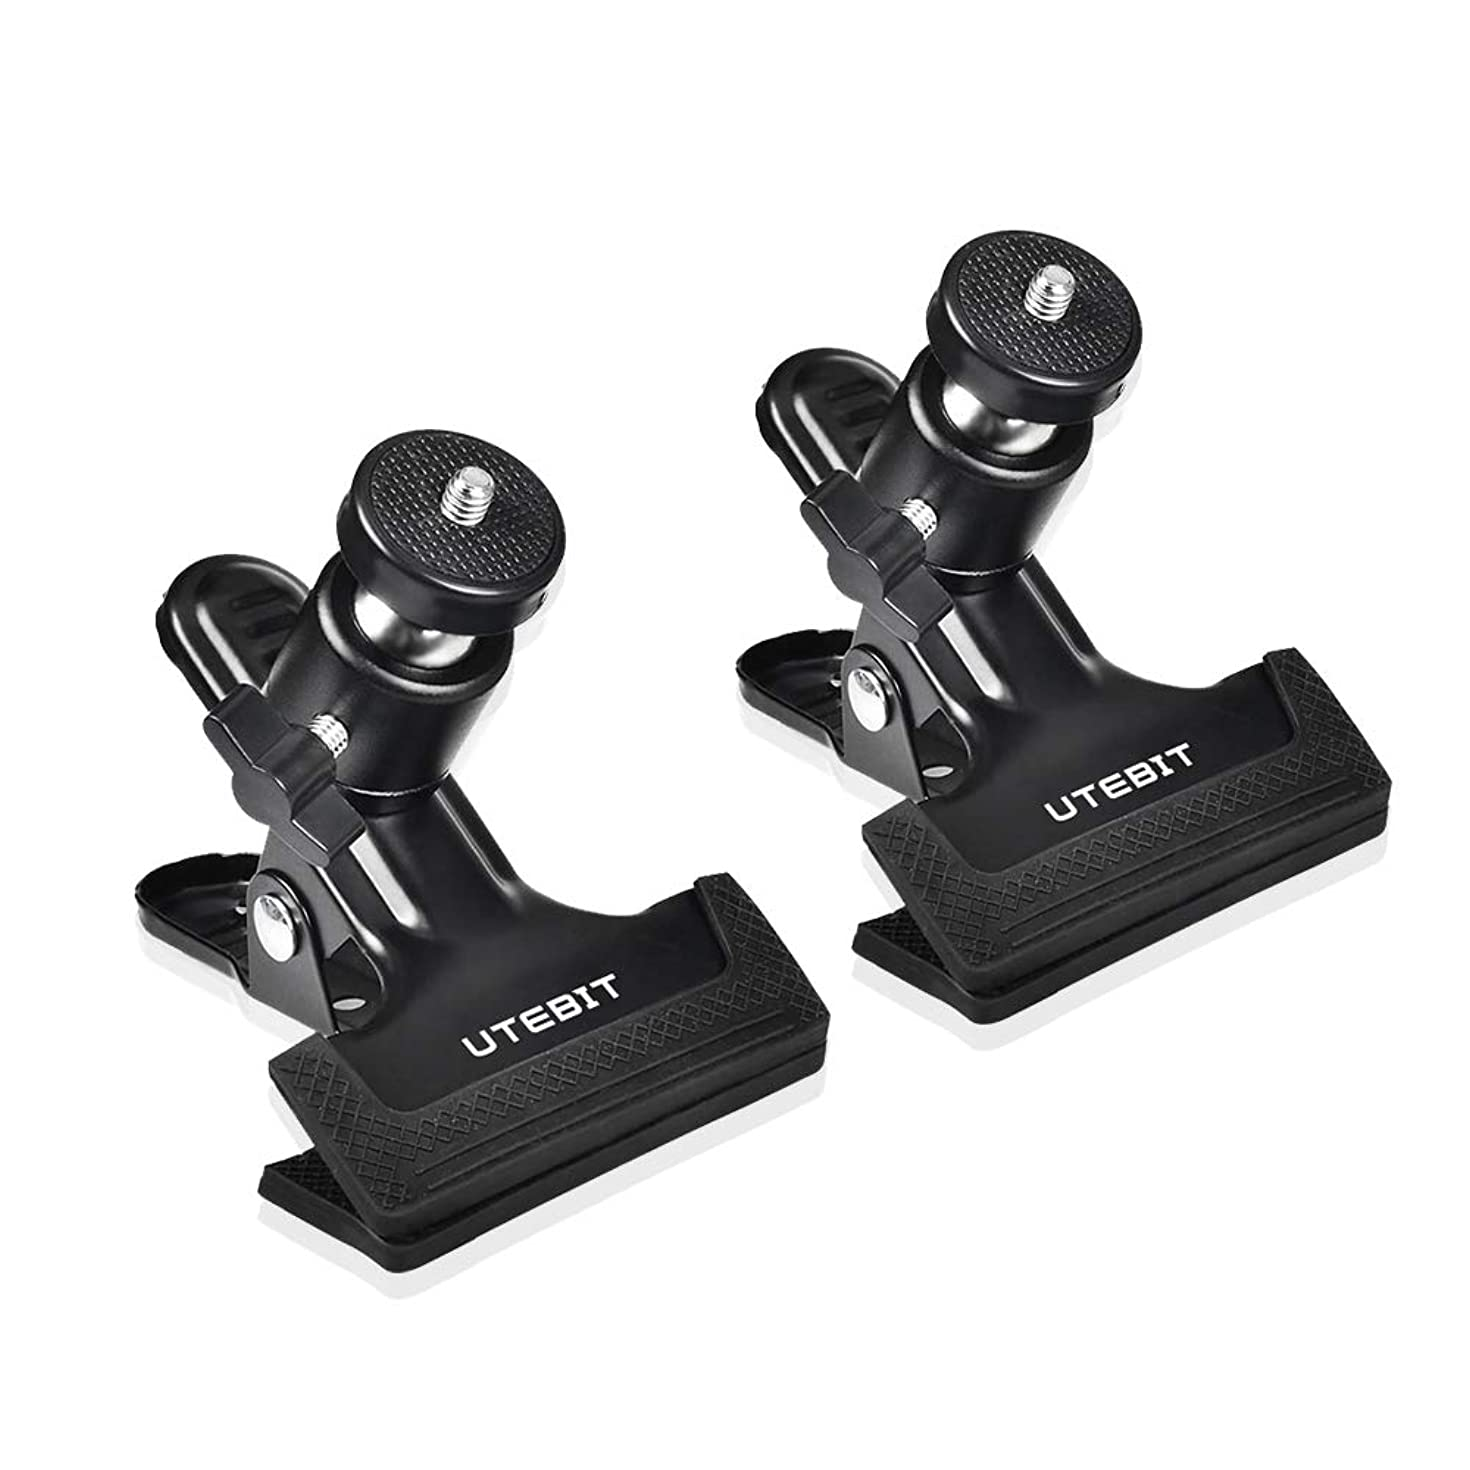 UTEBIT Tripod Clip Clamp with 360 Degree Mini Ballhead 2 Pack Heavy Duty Clamps Photography Accessories Clips Mount 1/4'' Screw Black Spring Clamp for DSLR, Video, Photoshoot, Studio Backdrops Camera